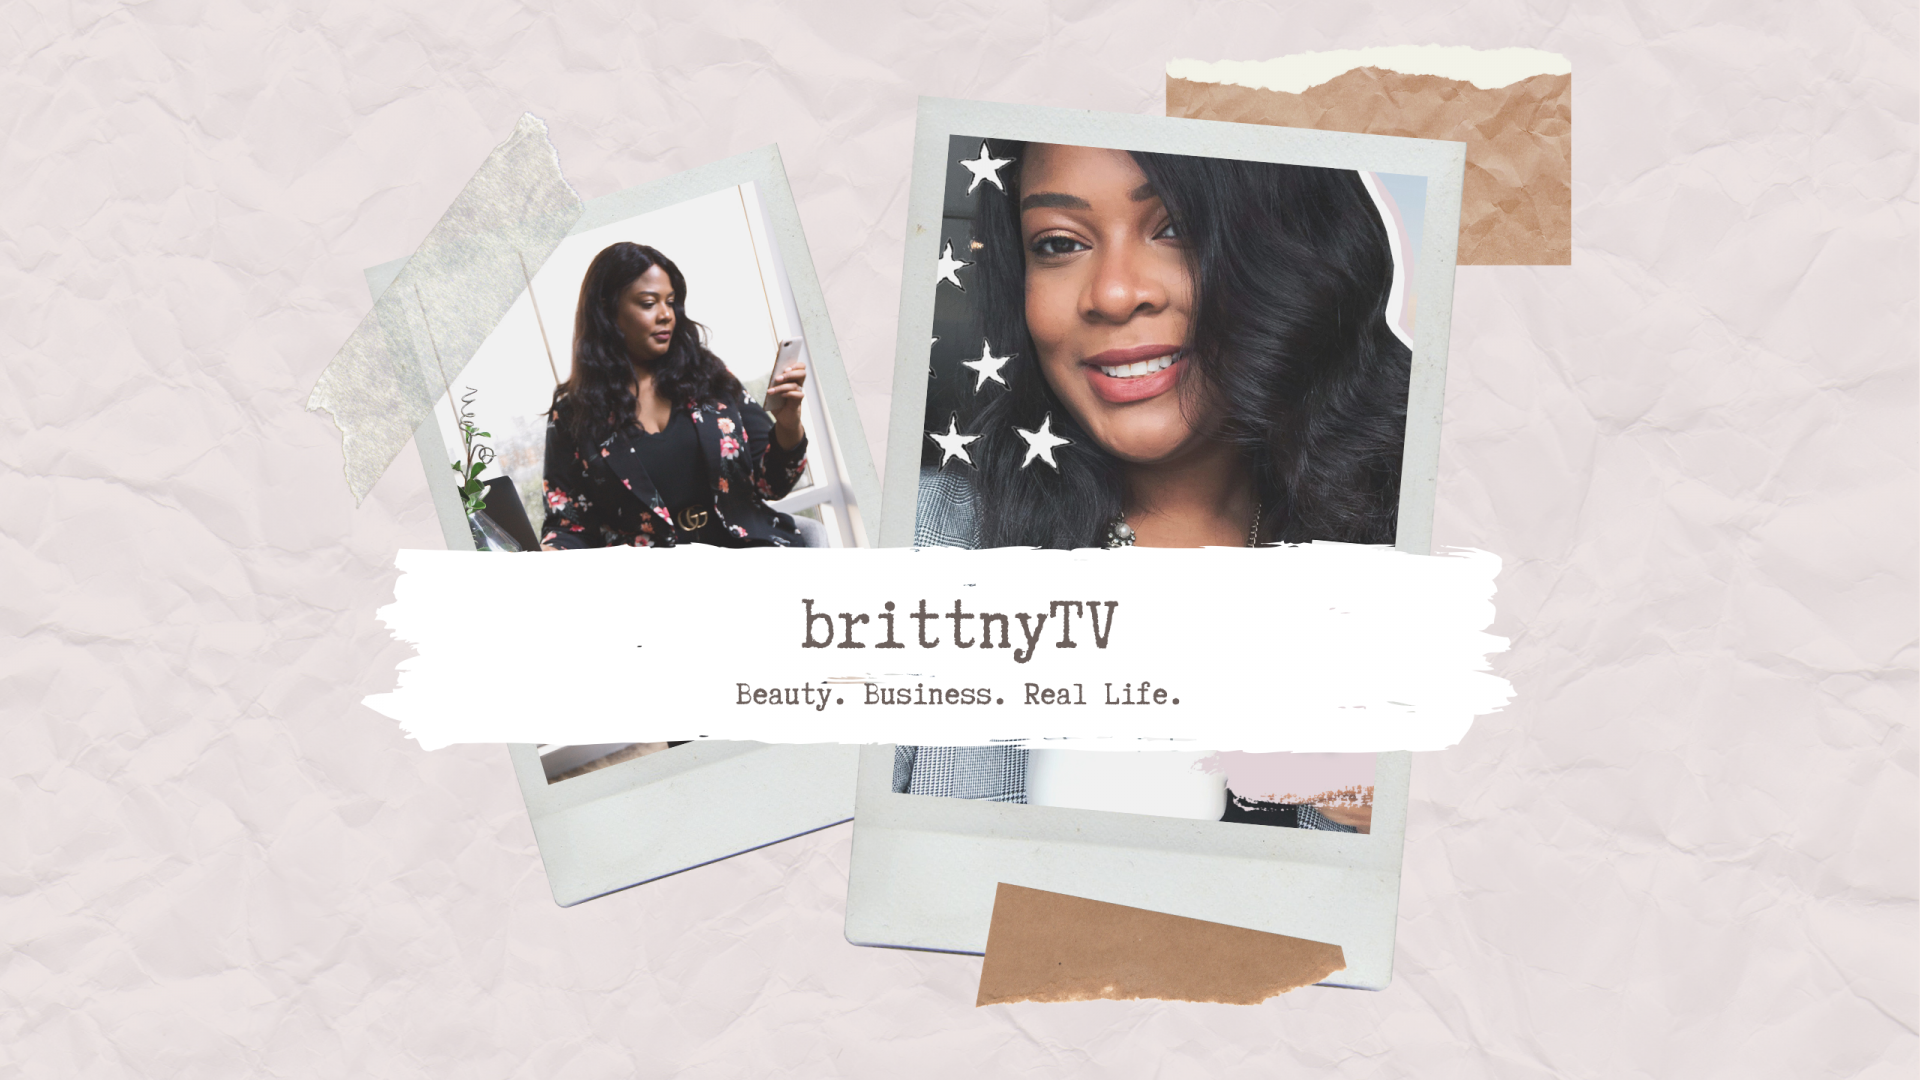 brittnytv youtube rebrand strategy business beauty real life